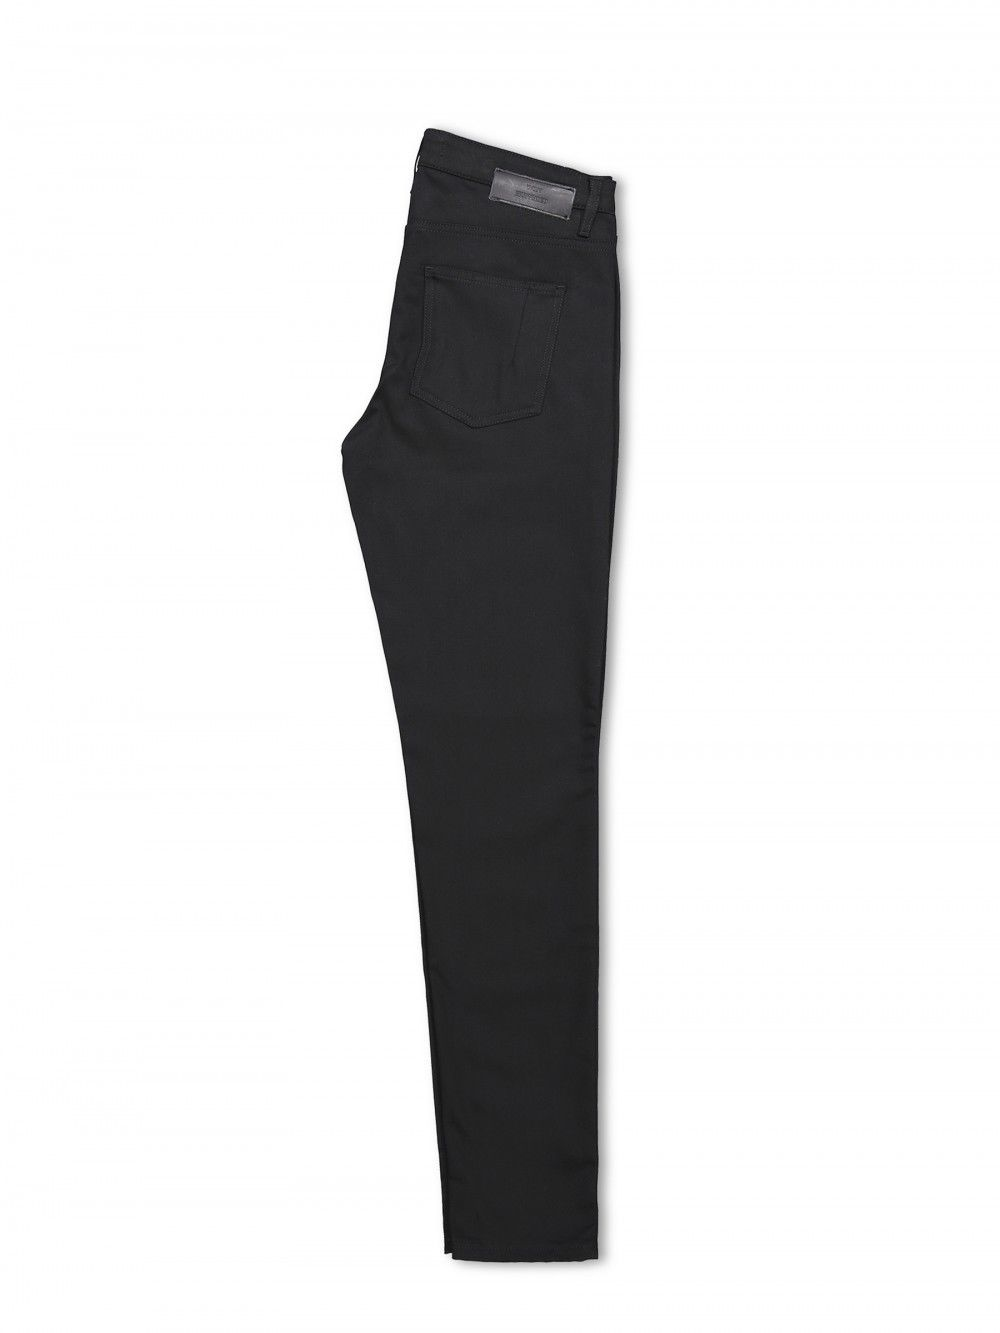 WON HUNDRED Shady A Stay Black Slim Fit Jeans, 31/32 - secondfirst